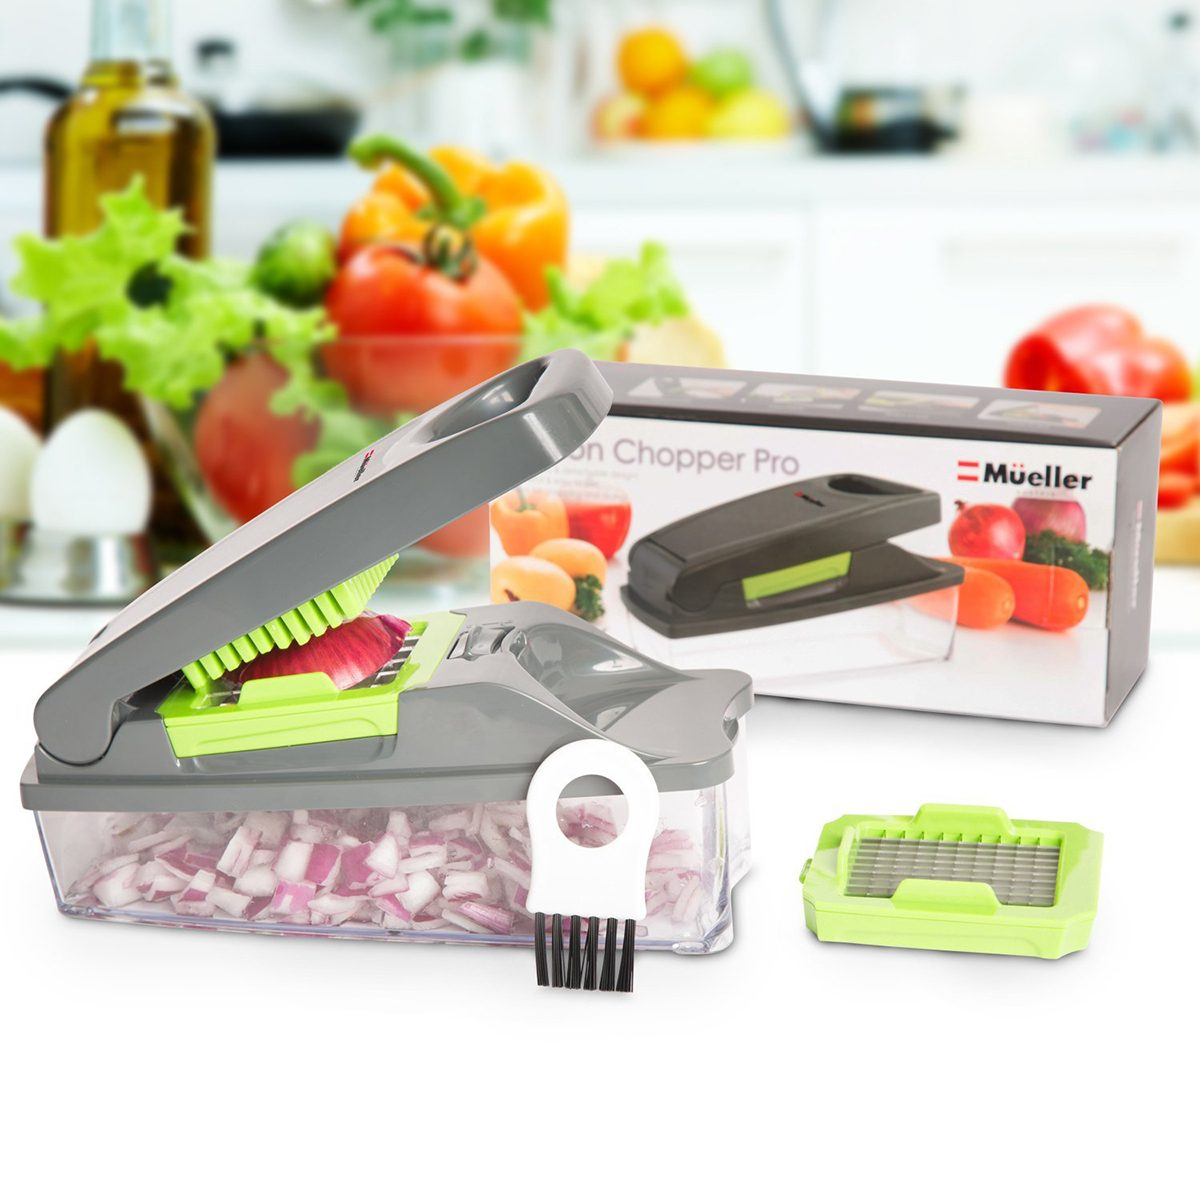 Mueller Austria SYNCHKG100176 Pro Strongest NO More TEARS 30% Heavier Duty Multi Vegetable-Fruit-Cheese-Onion Chopper-Dicer-Kitchen Cutter, Gray